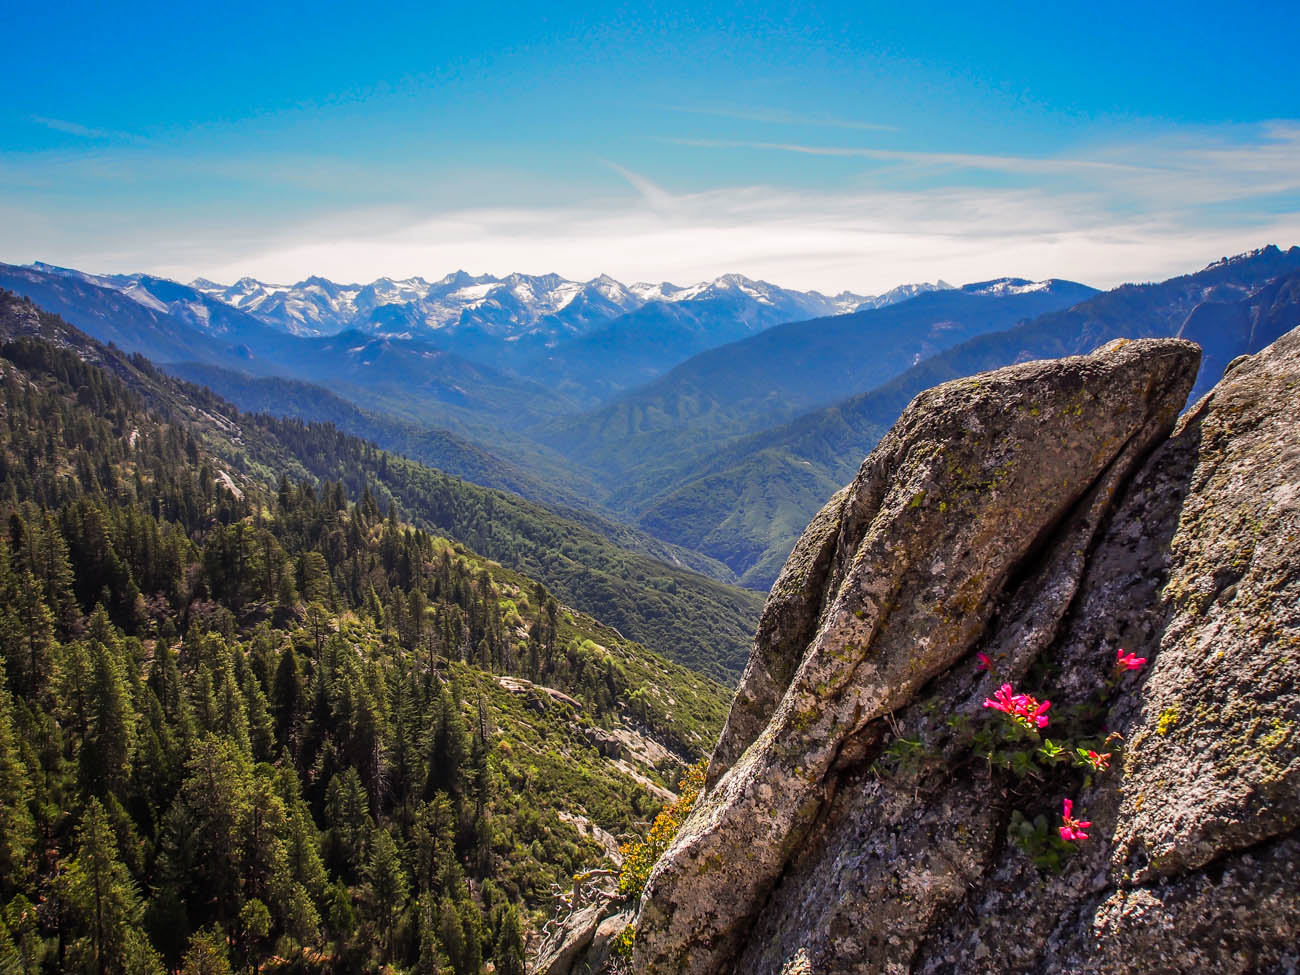 Spring time in the Sierras is a beautiful time